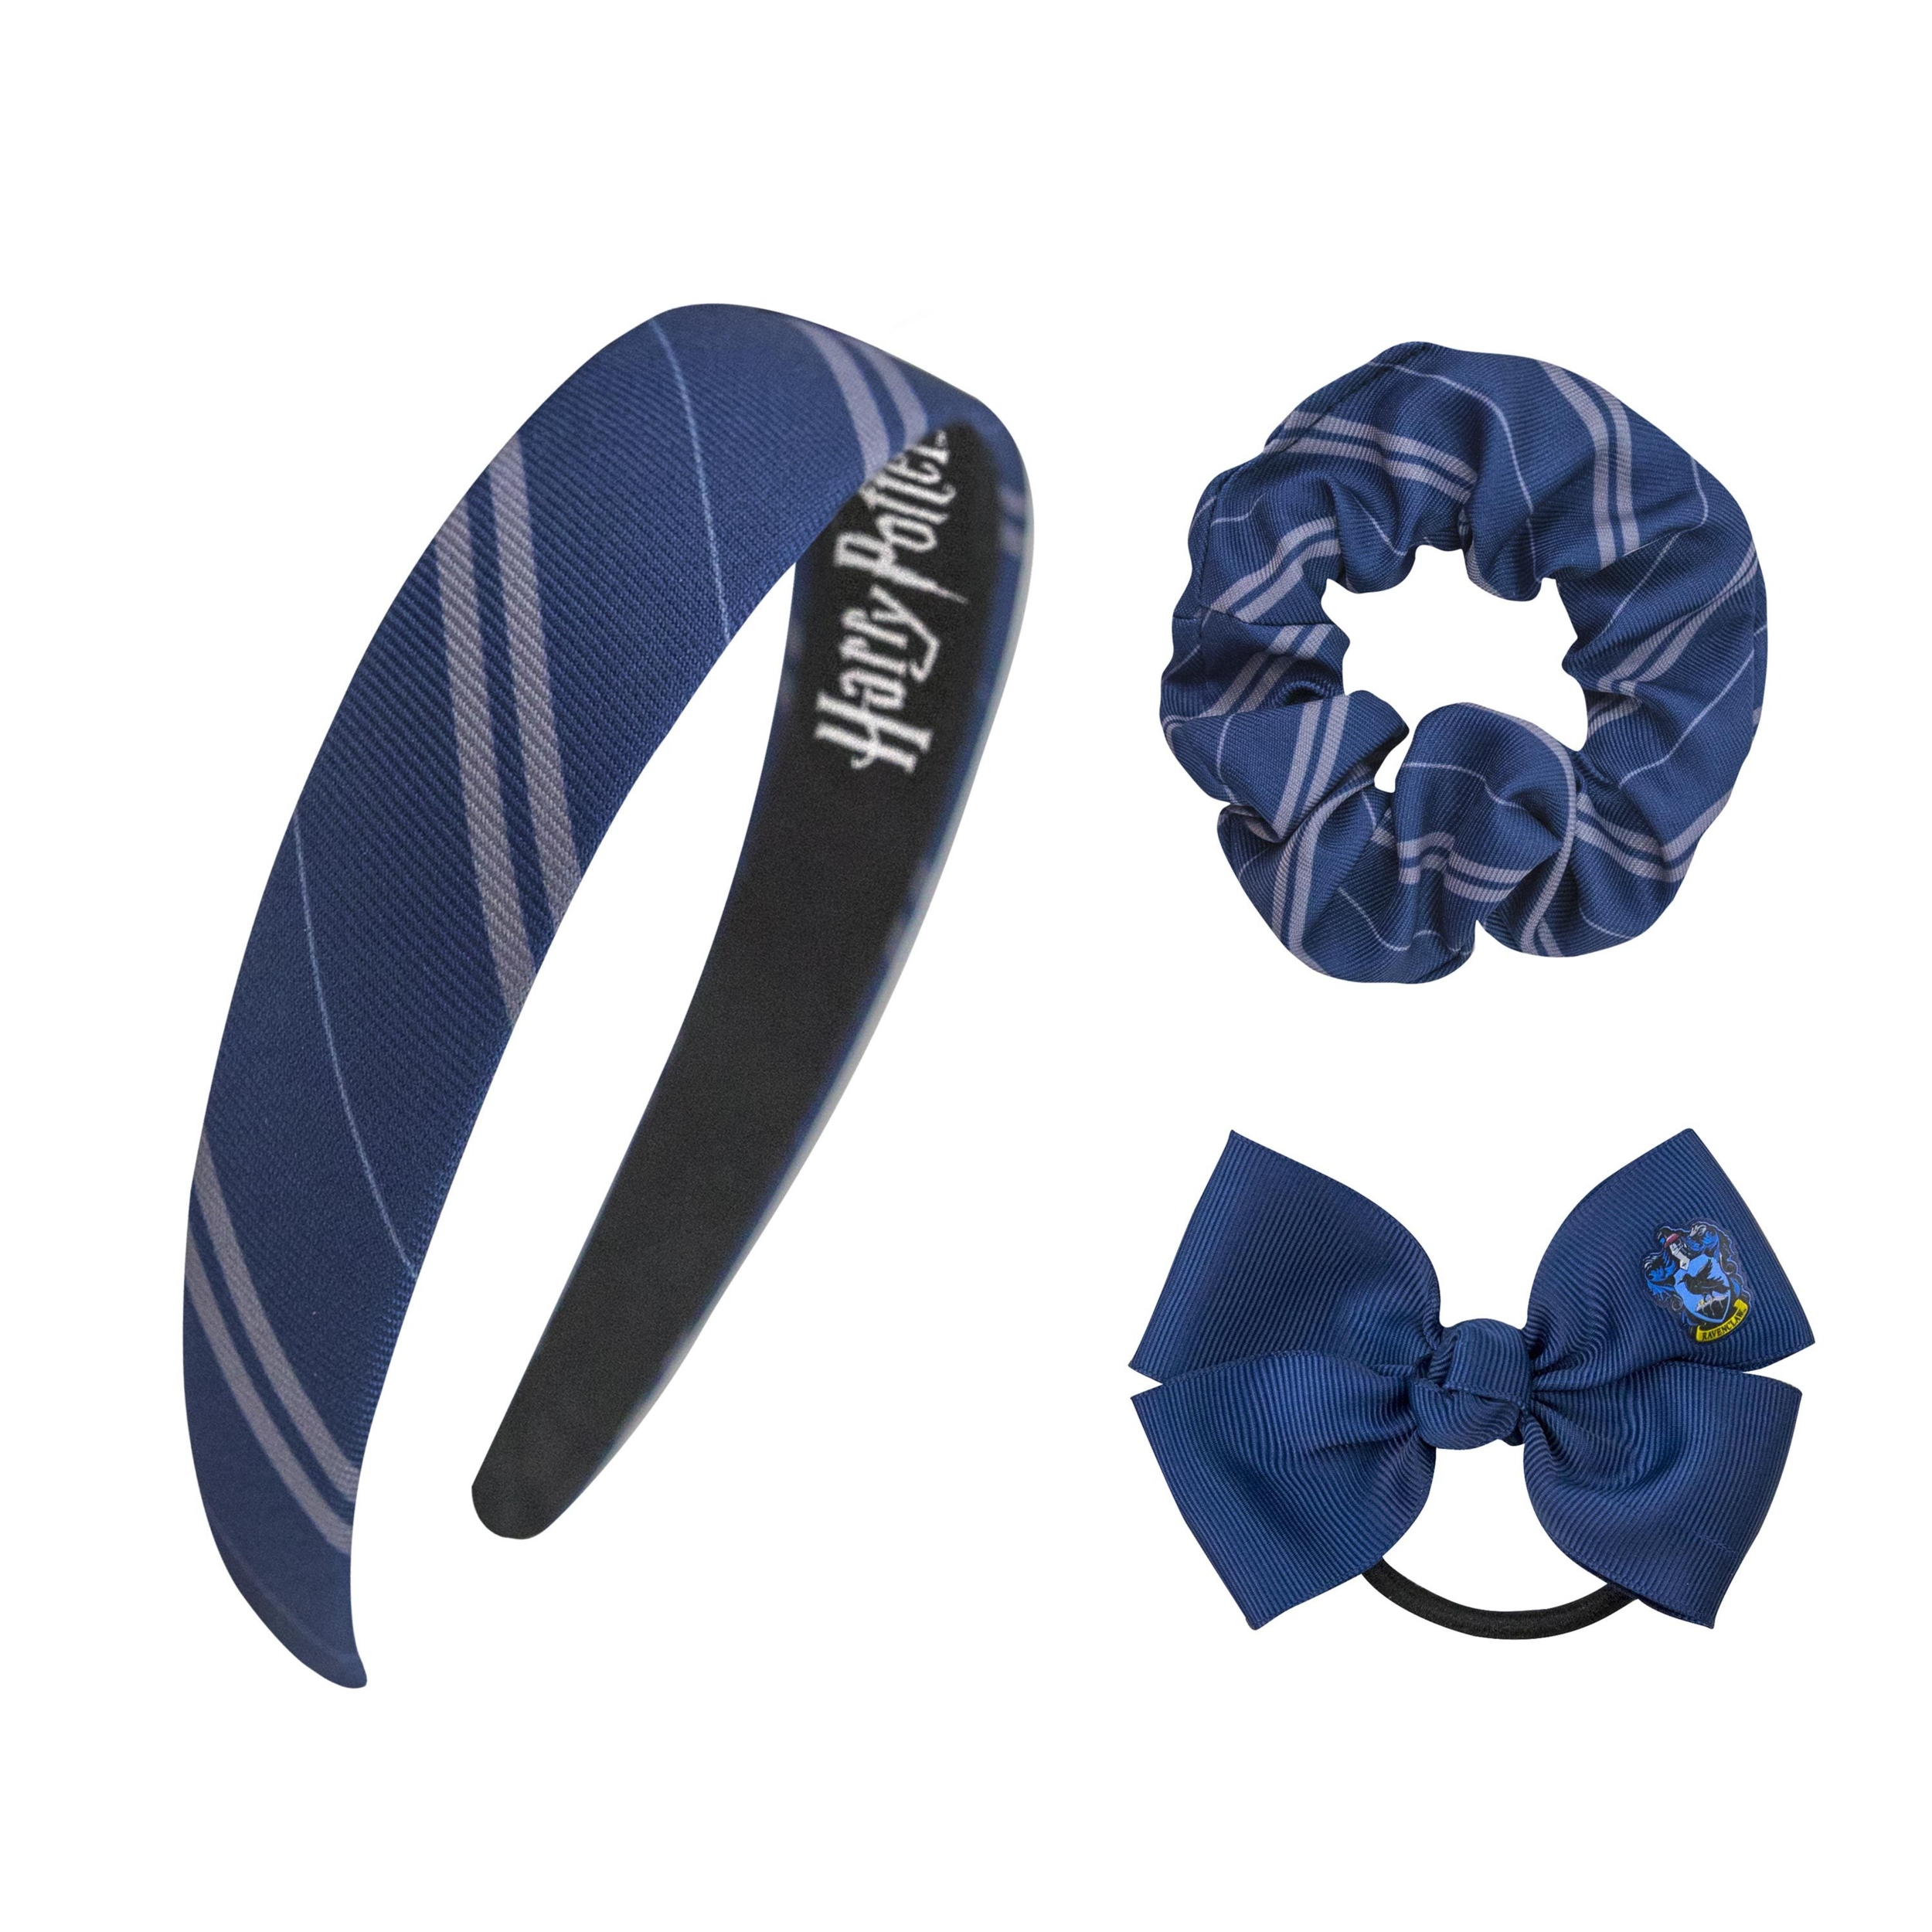 HairAccessories-Classic-set-Ravenclaw-HarryPotter-Product_7